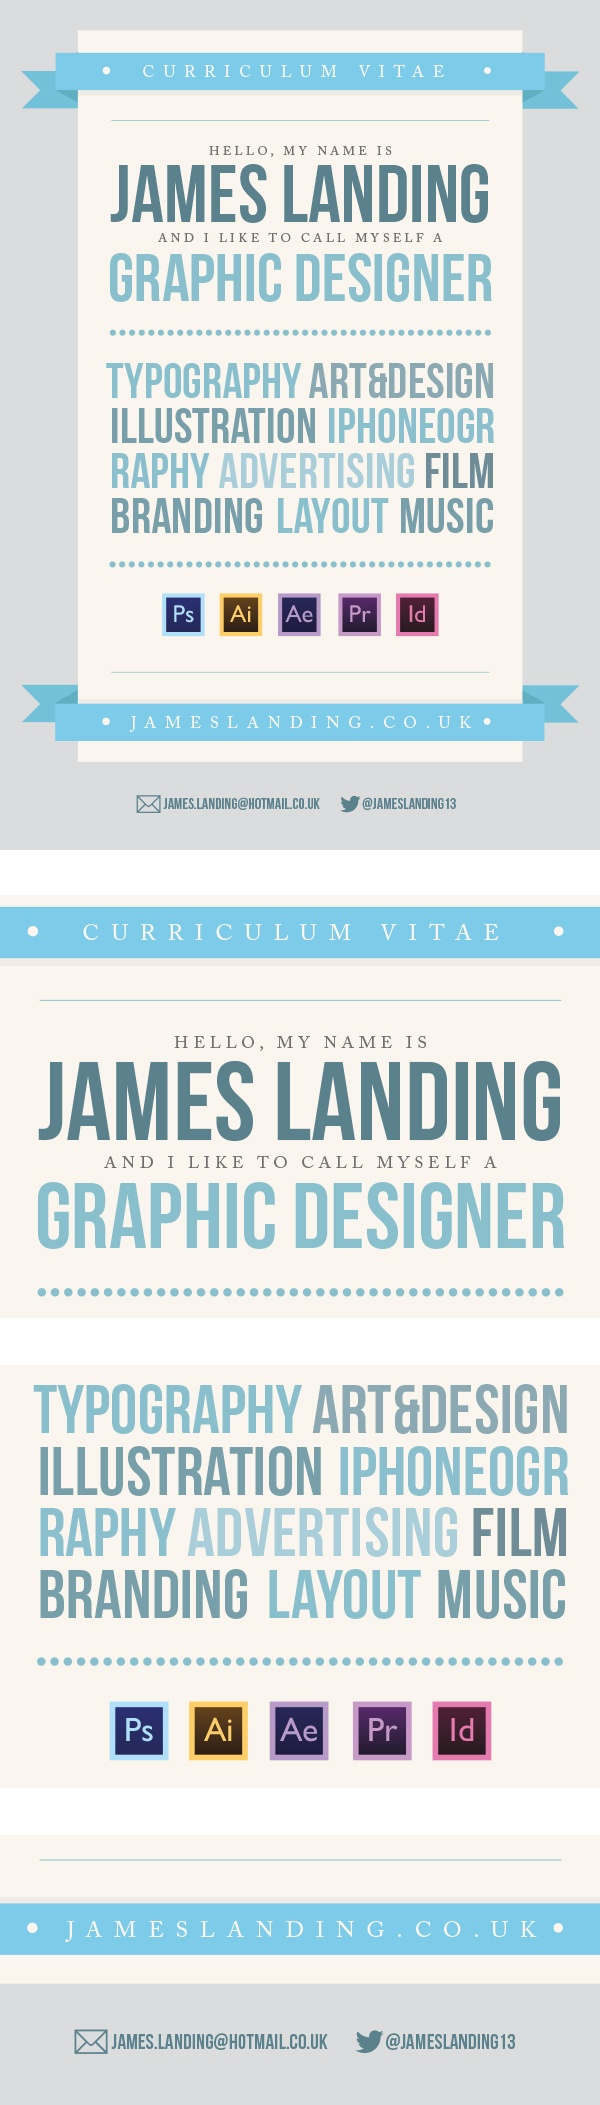 Designer CV on Behance